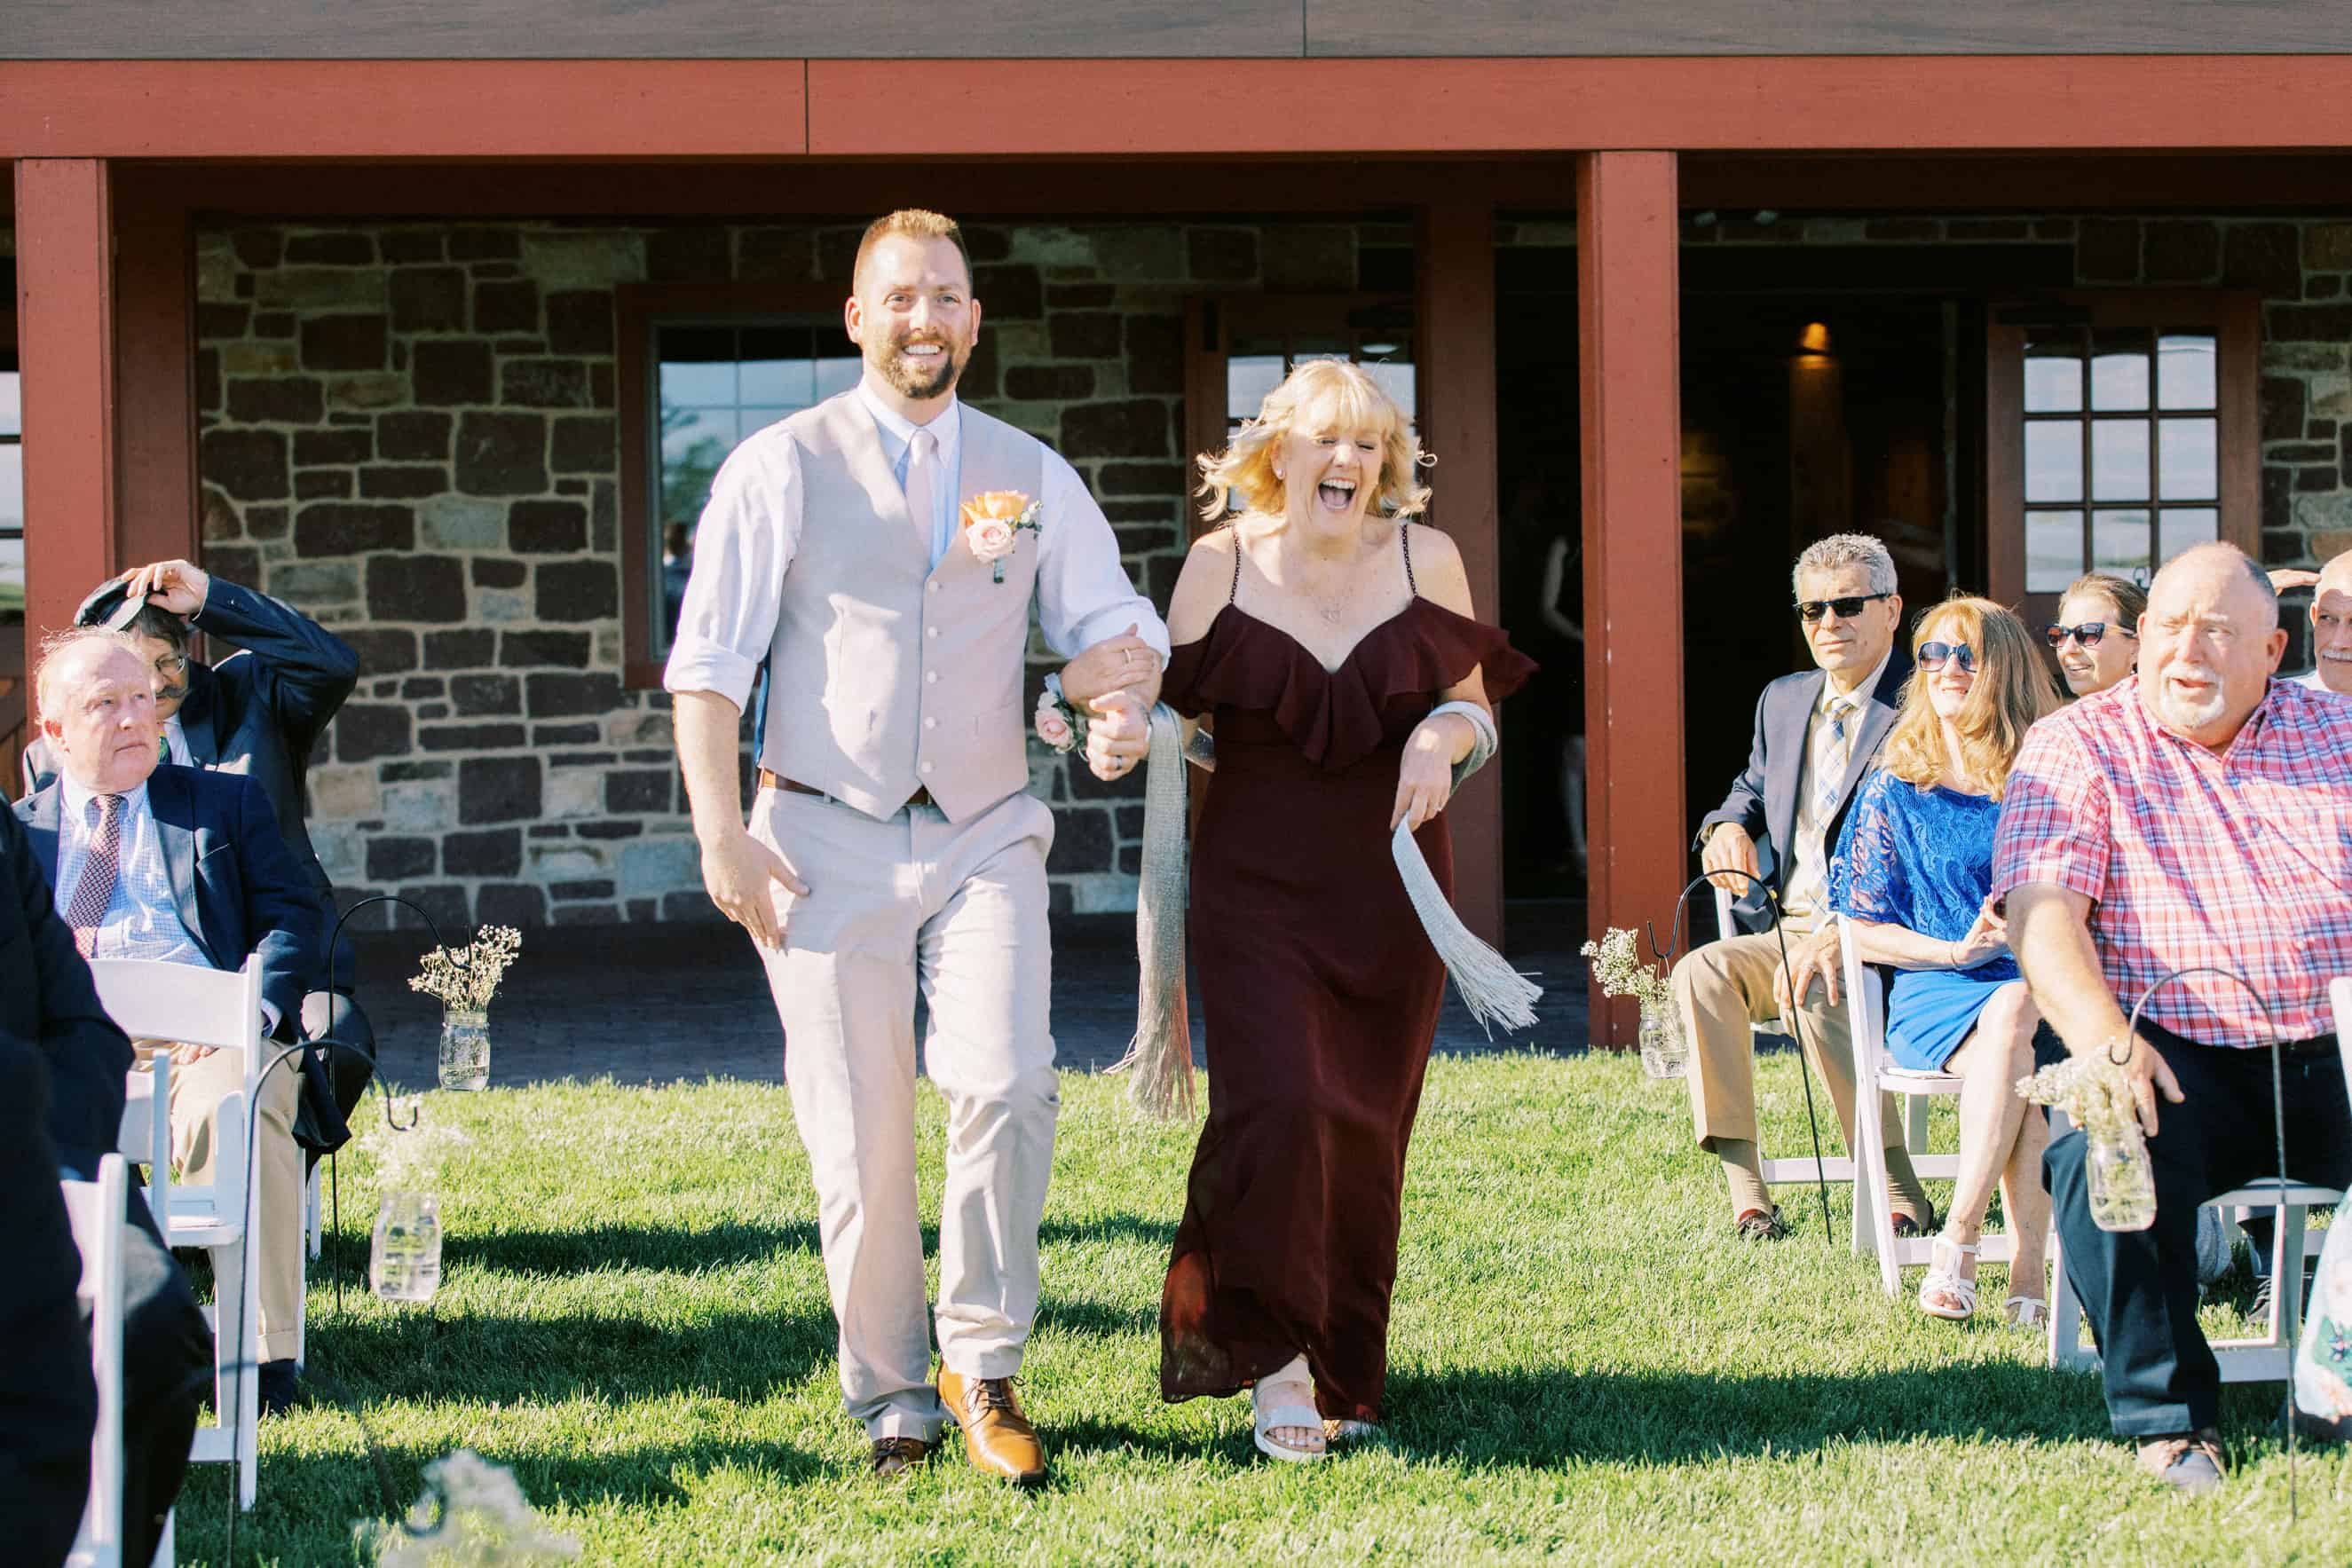 Wedding Ceremony Harvest View Barn at Hershey Farms